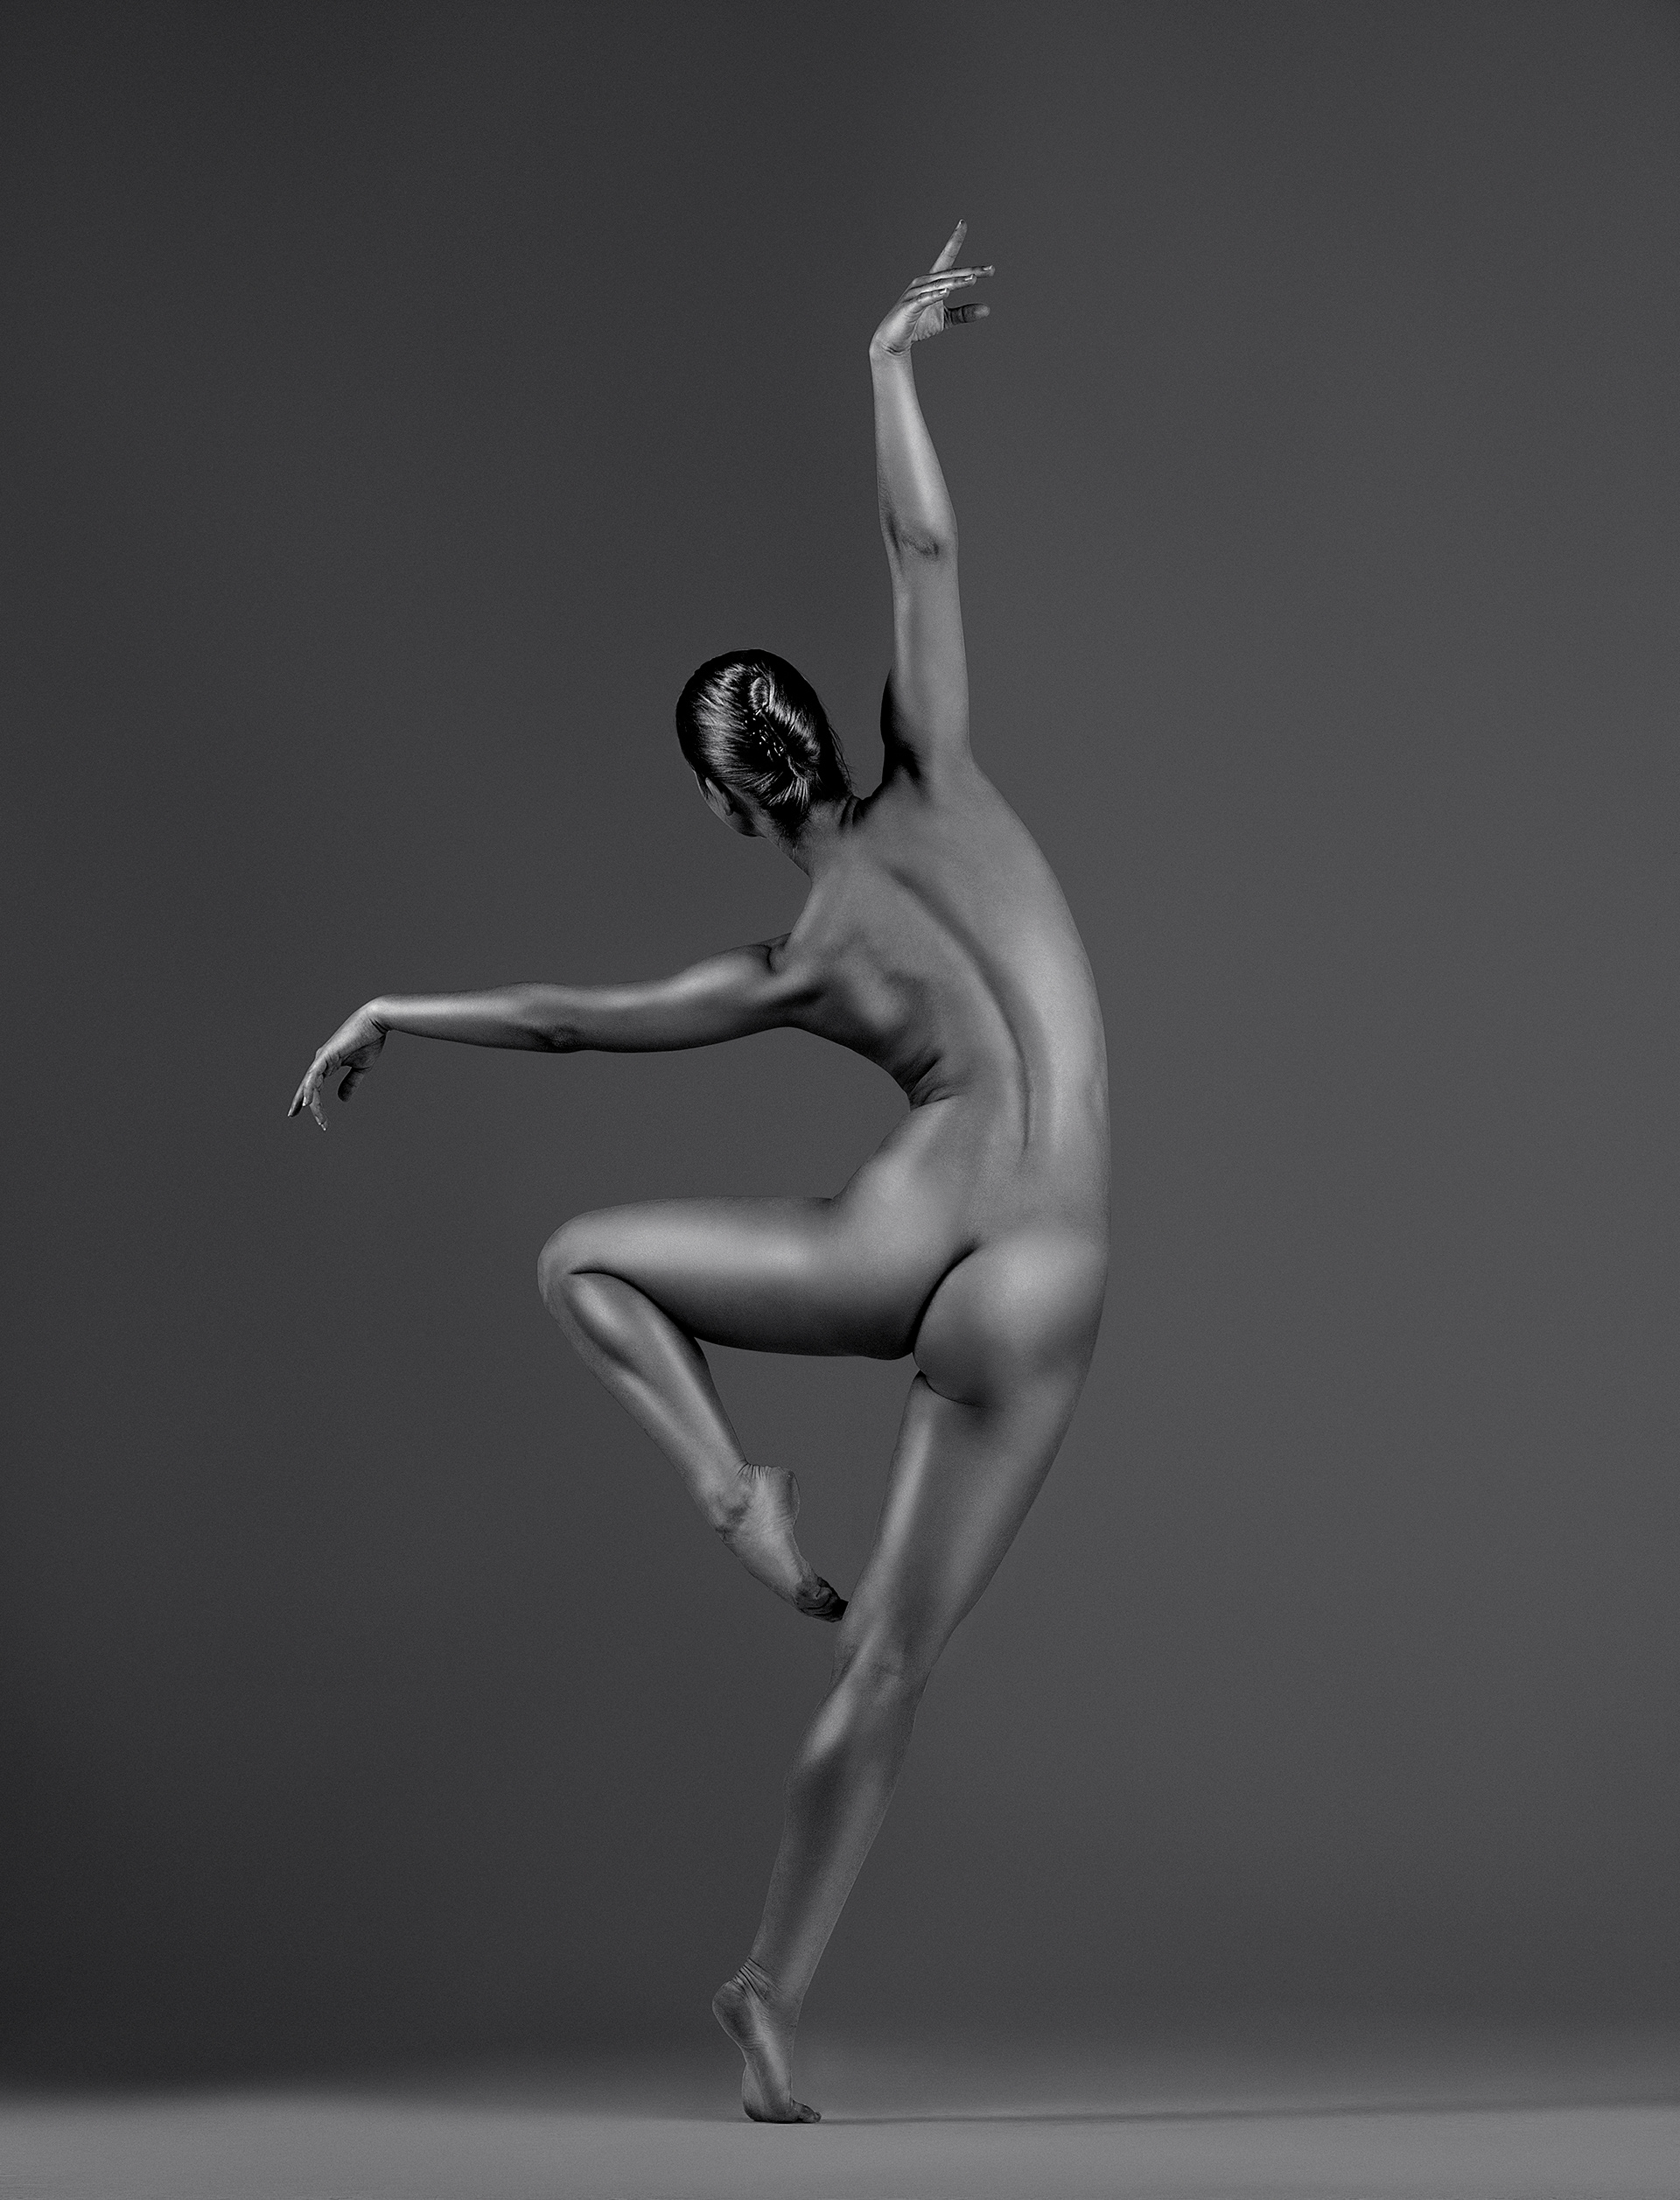 uncensored-photos-of-nude-ballet-dancers